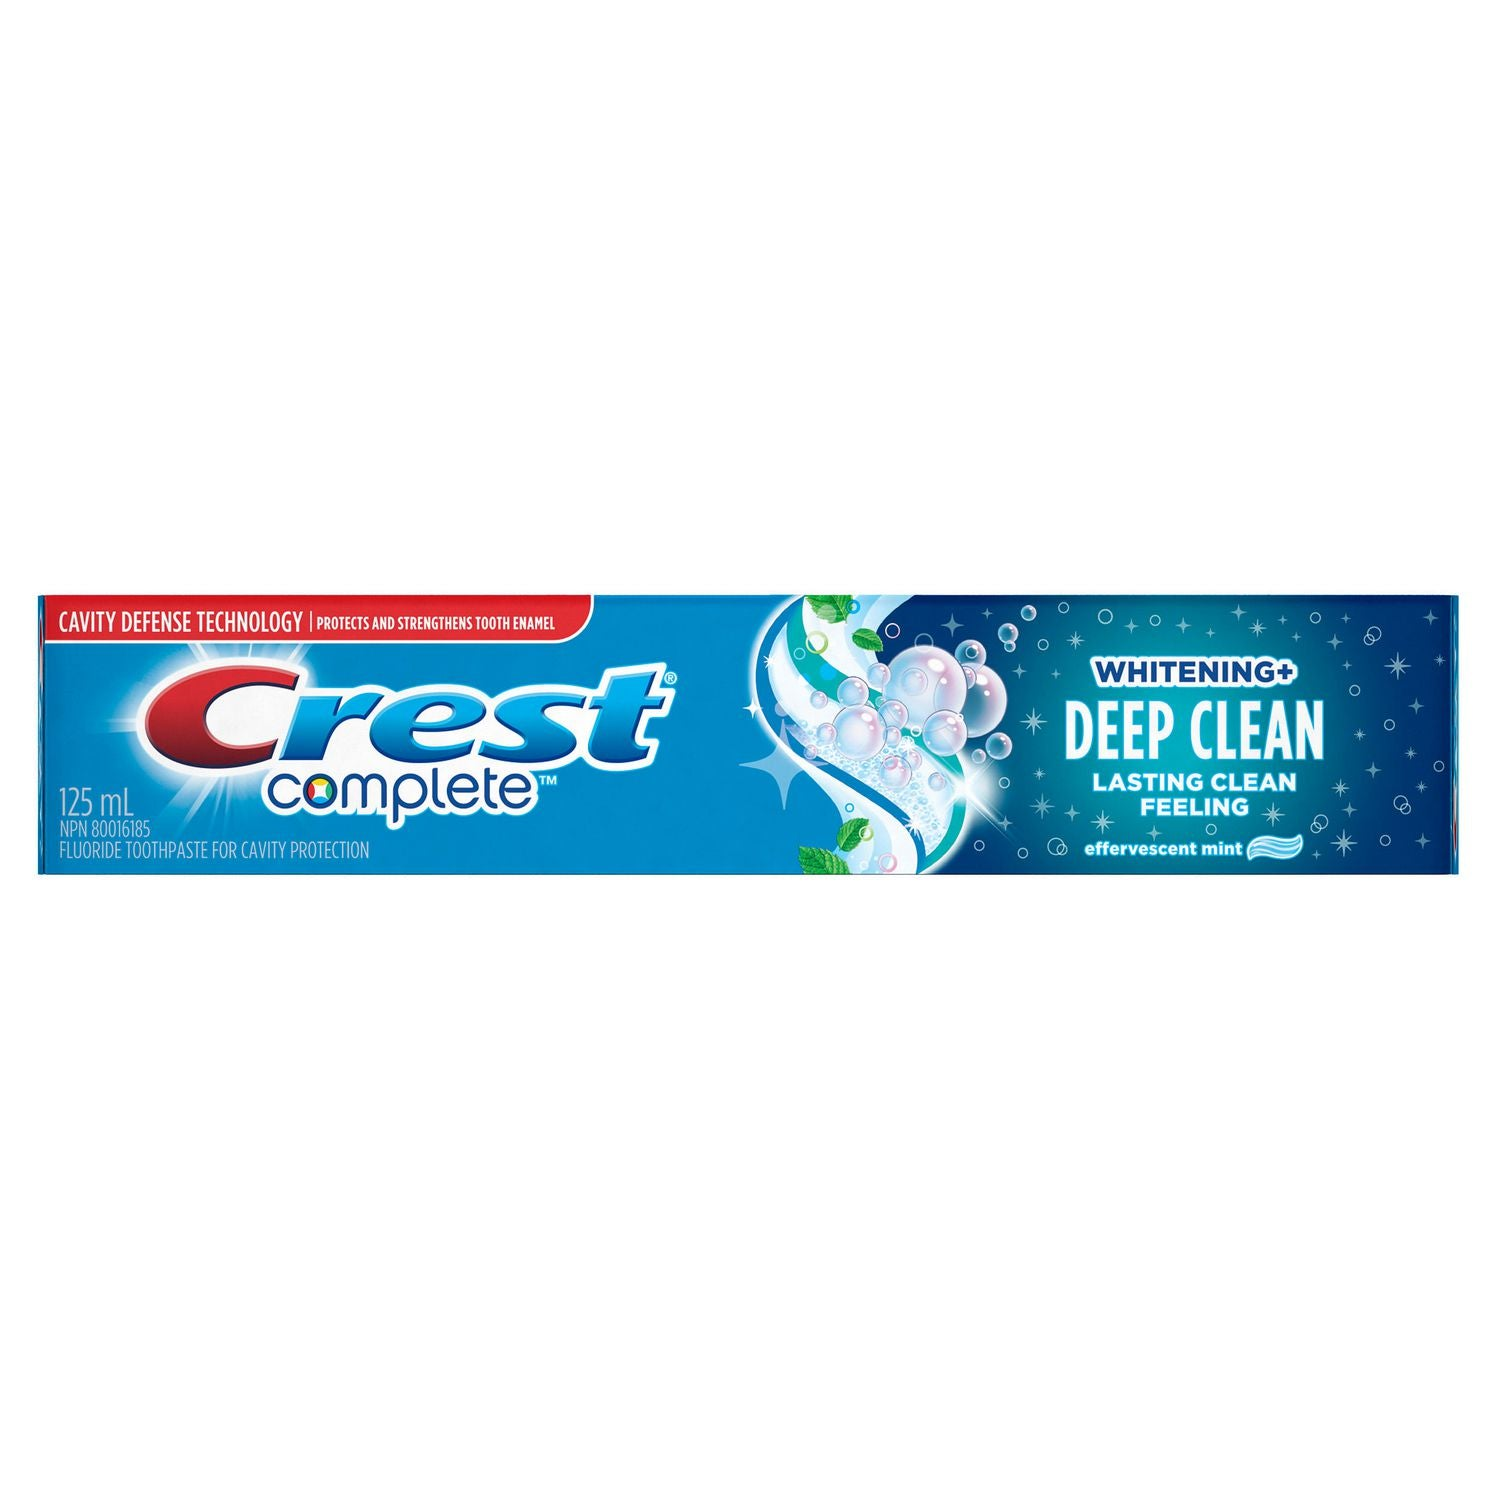 Crest Complete Whitening+ 125mL